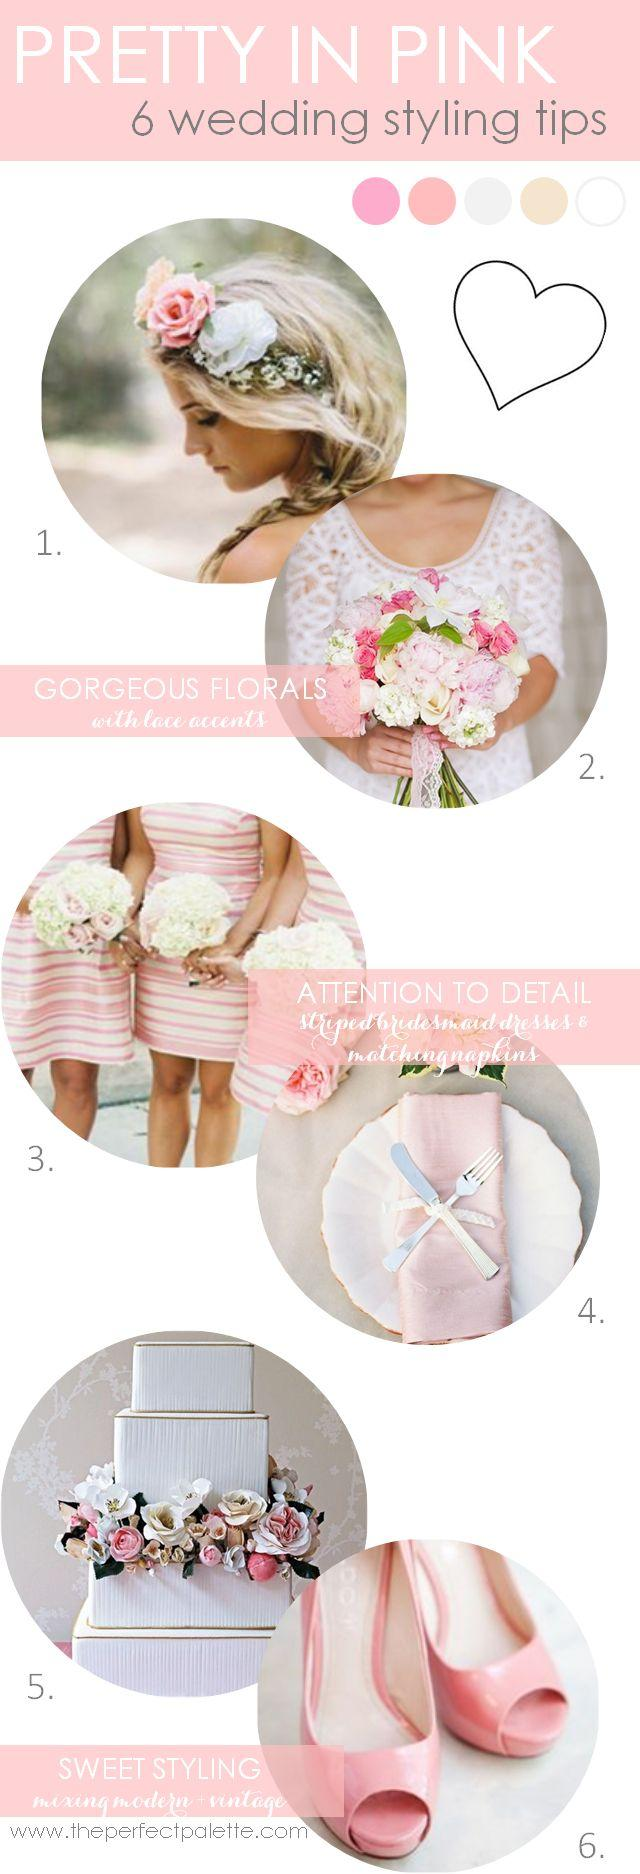 Wedding - 6 Wedding Styling Tips